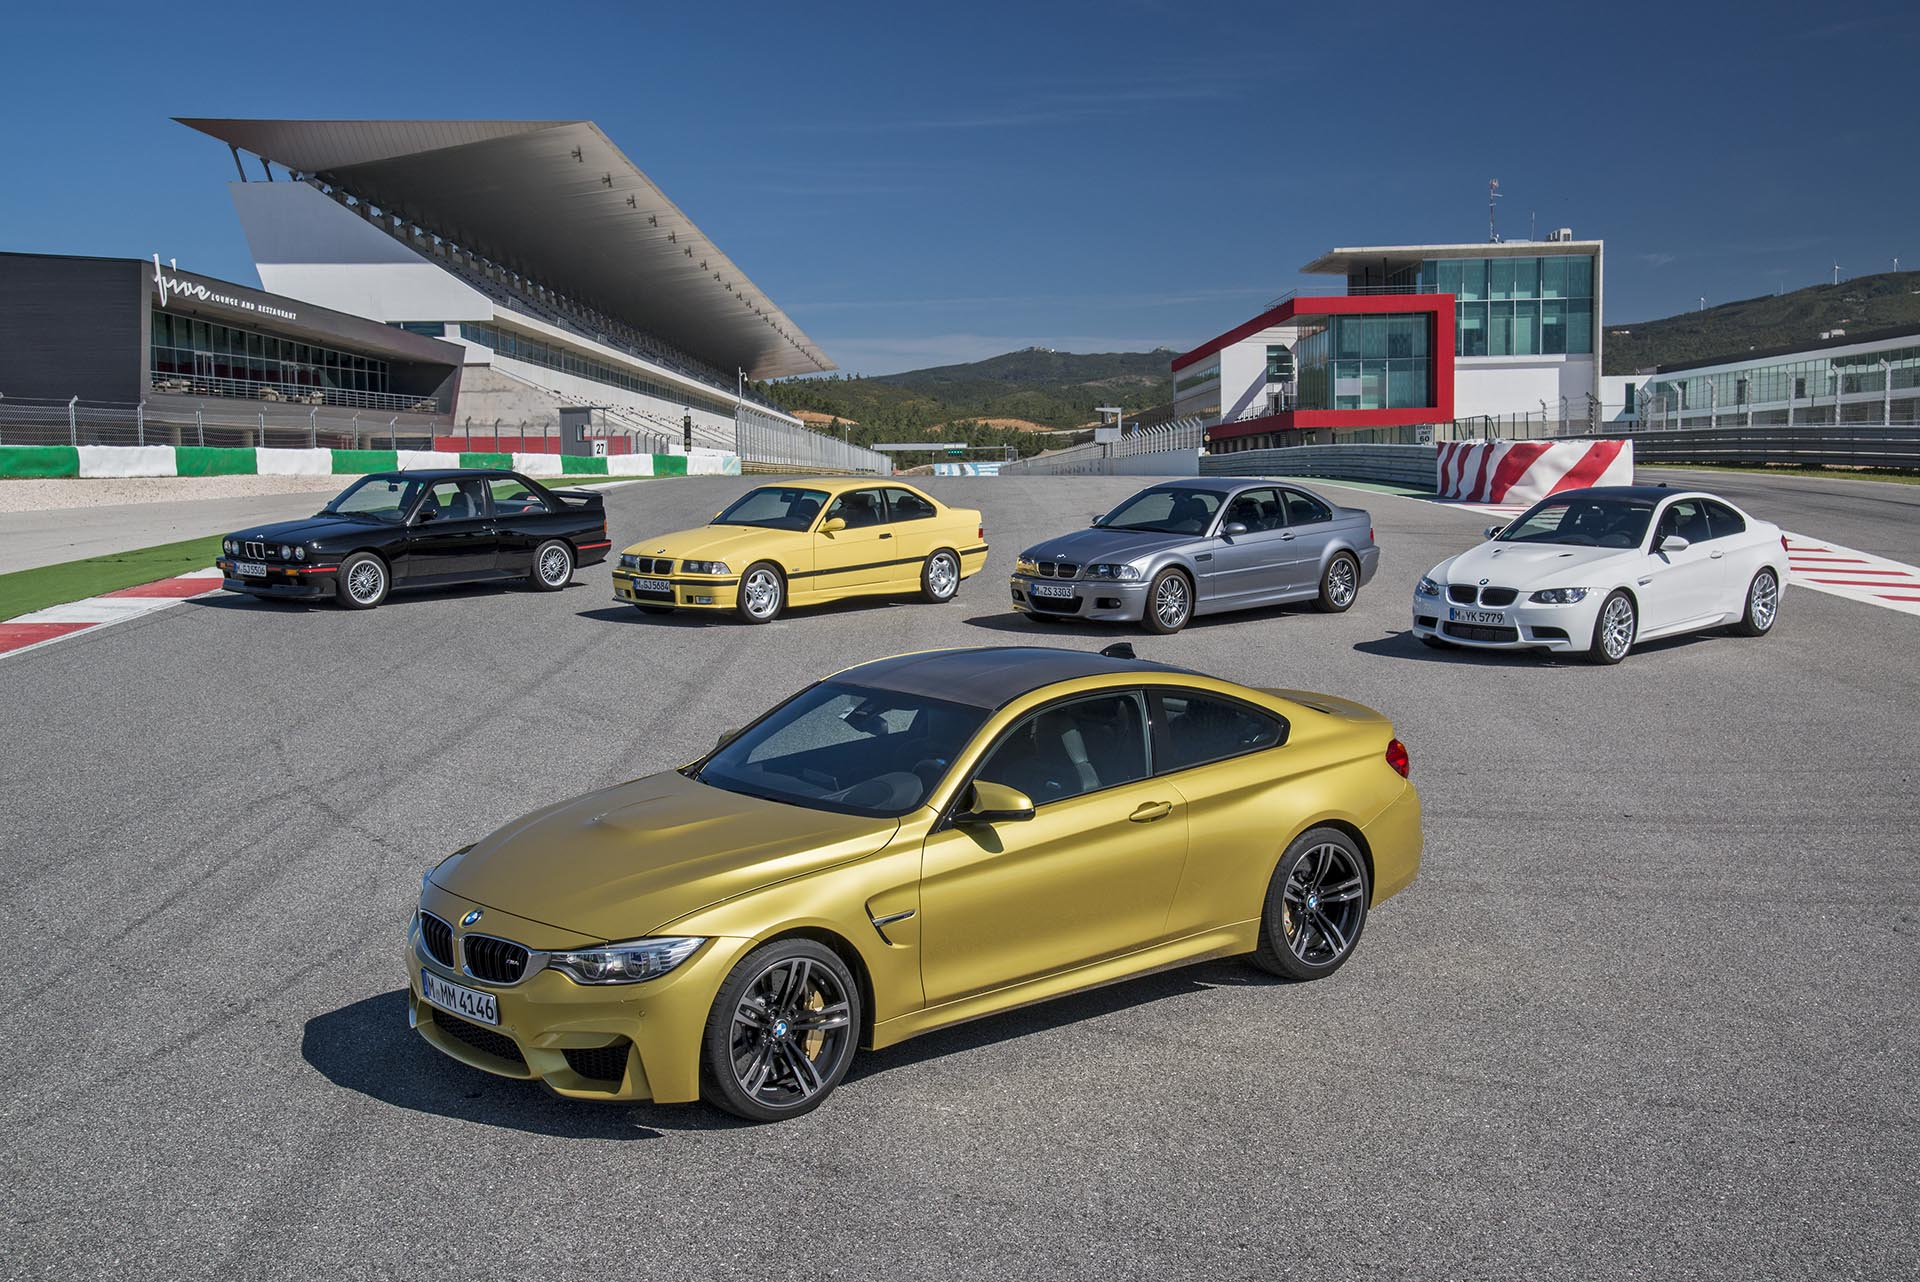 17_Group Shot of Classic BMW M3s